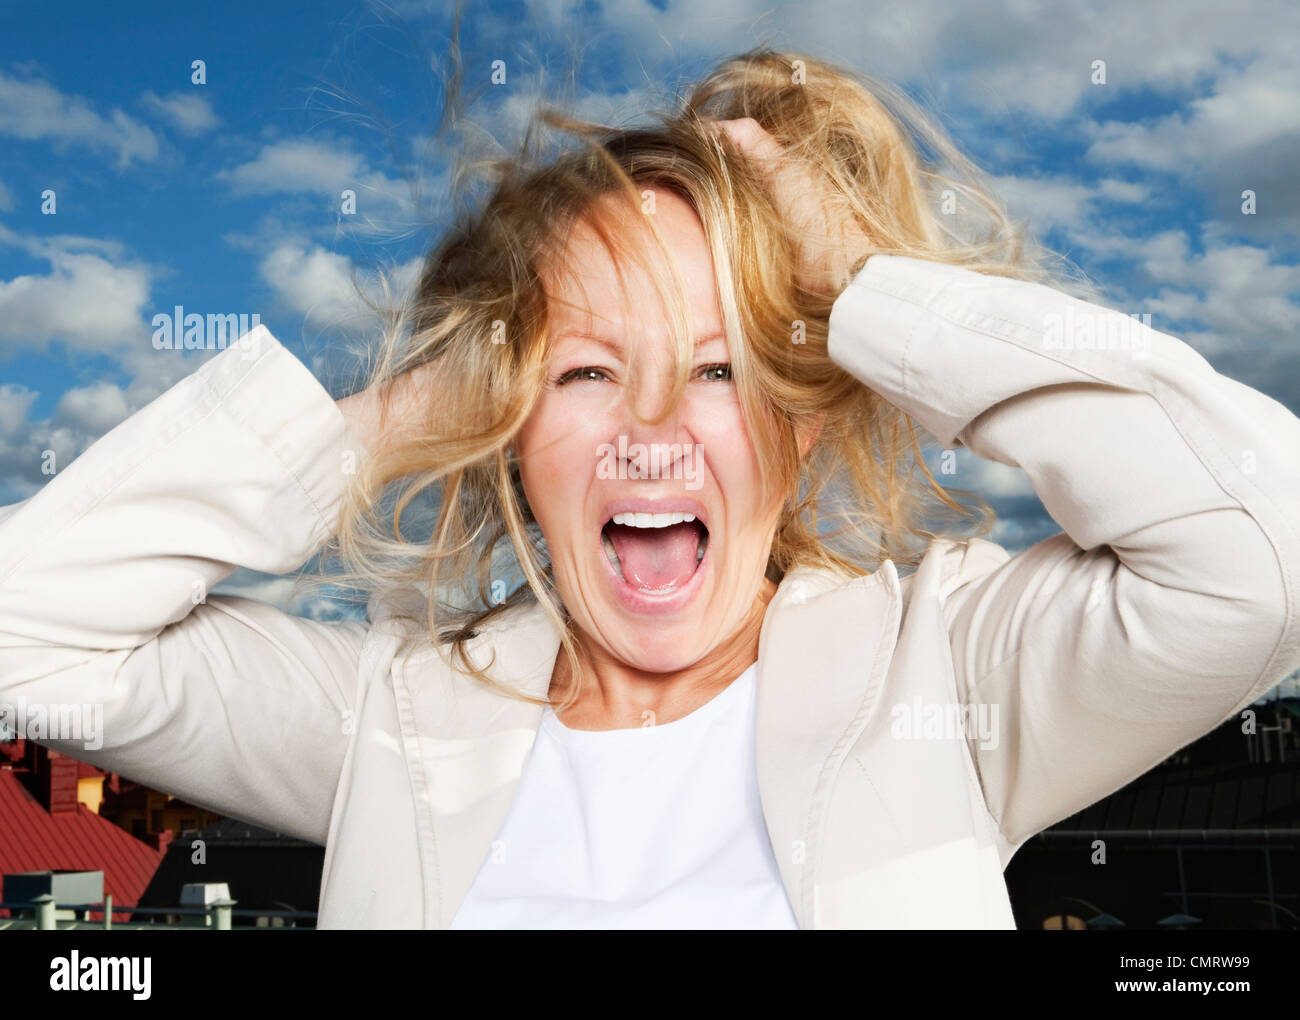 Crazy - Stock Image